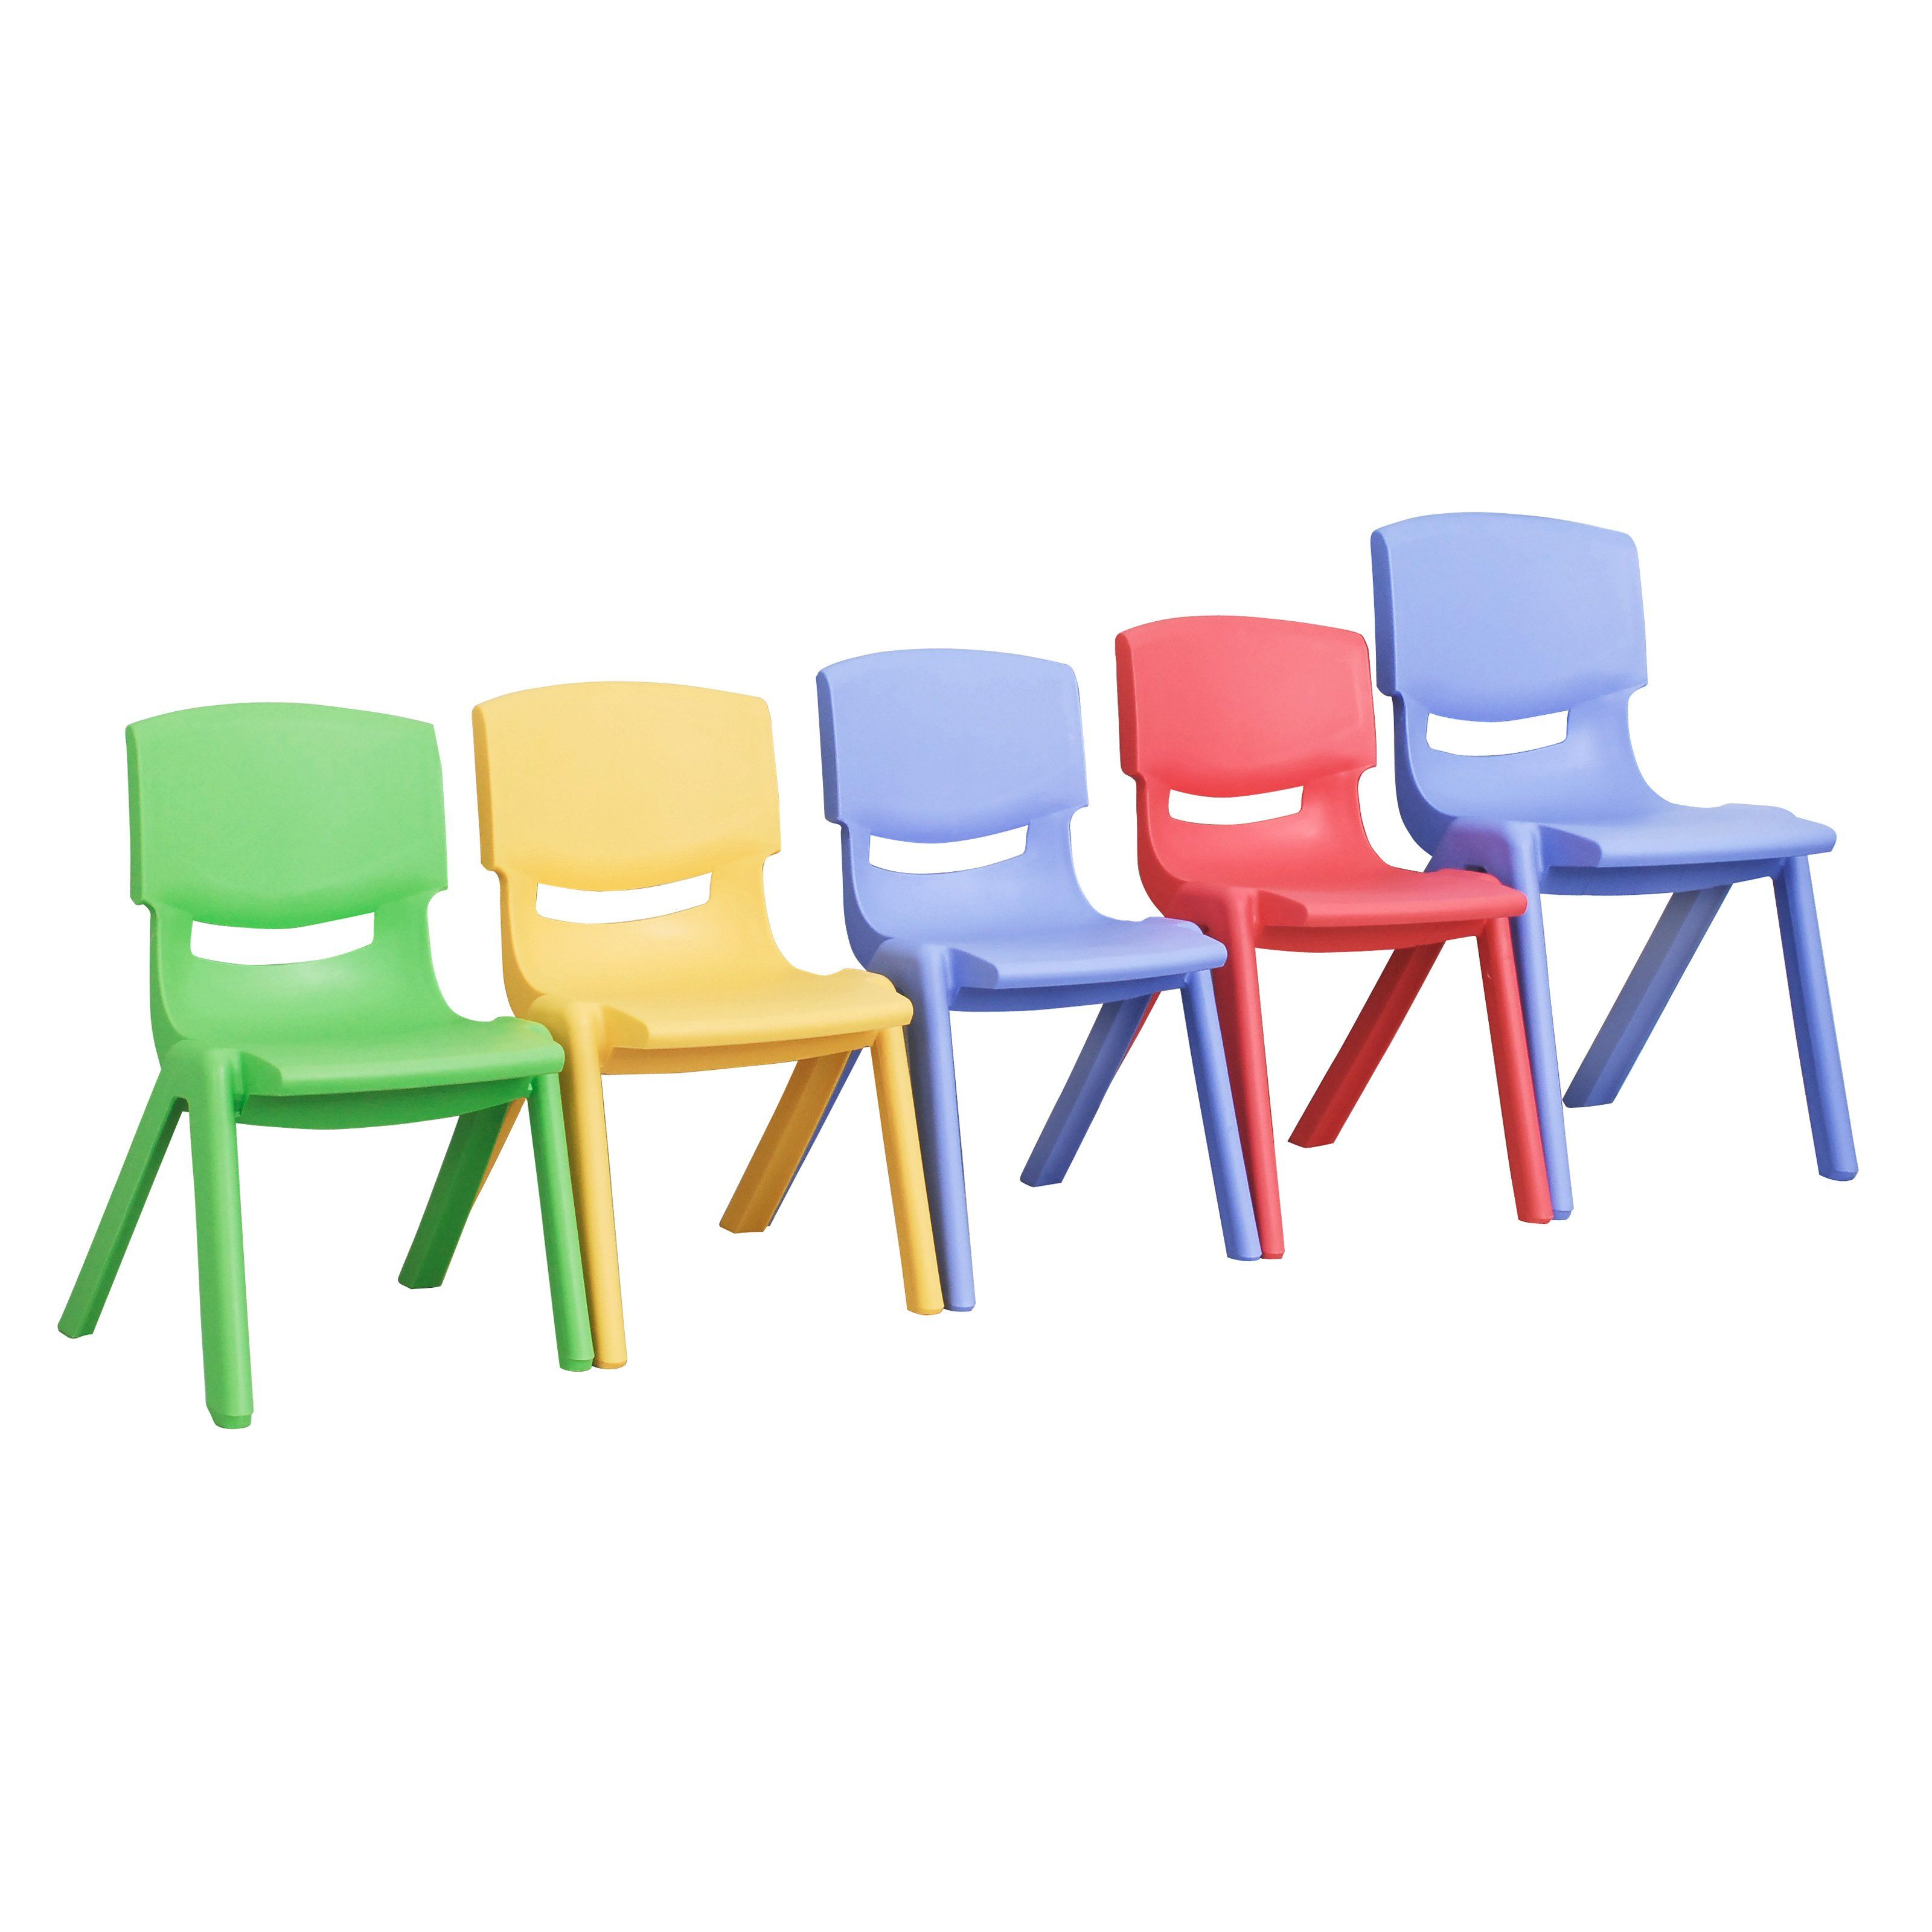 Have To Have It Ecr4kids Plastic Stackable Chair Set Of 6 Chairs